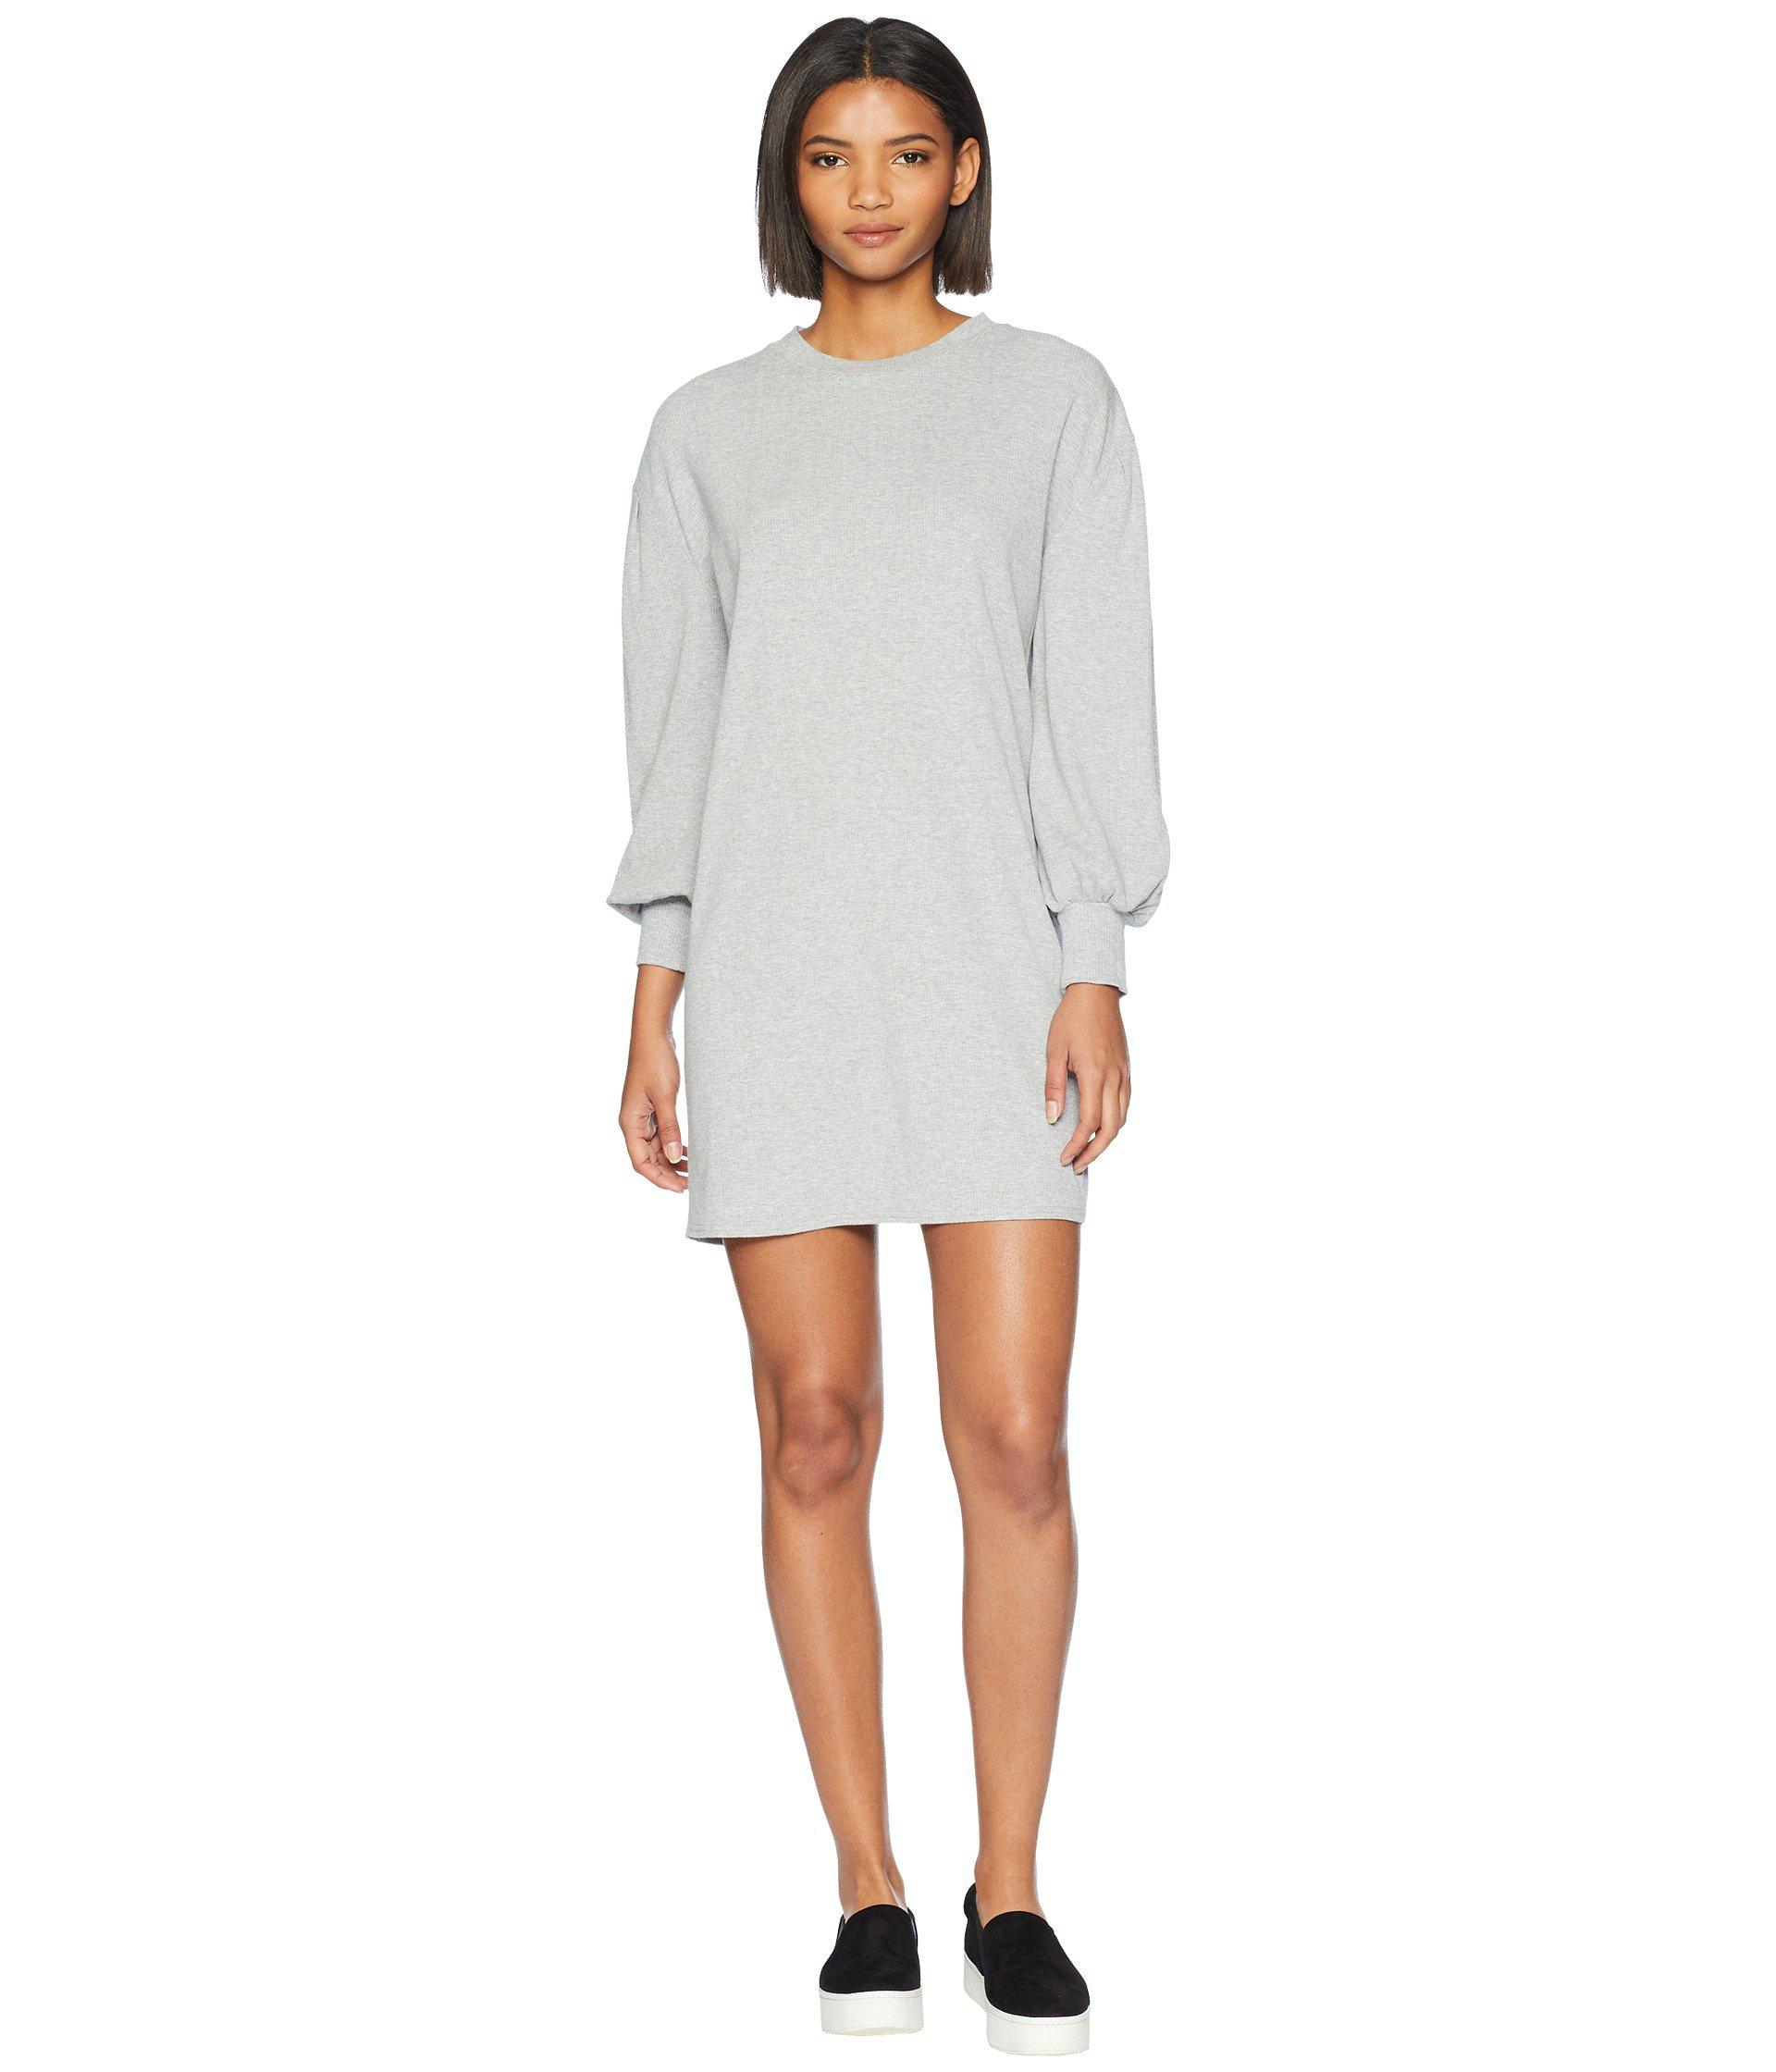 41d77f3176 Lyst - Volcom Lil Long Sleeve Dress in Gray - Save 64%